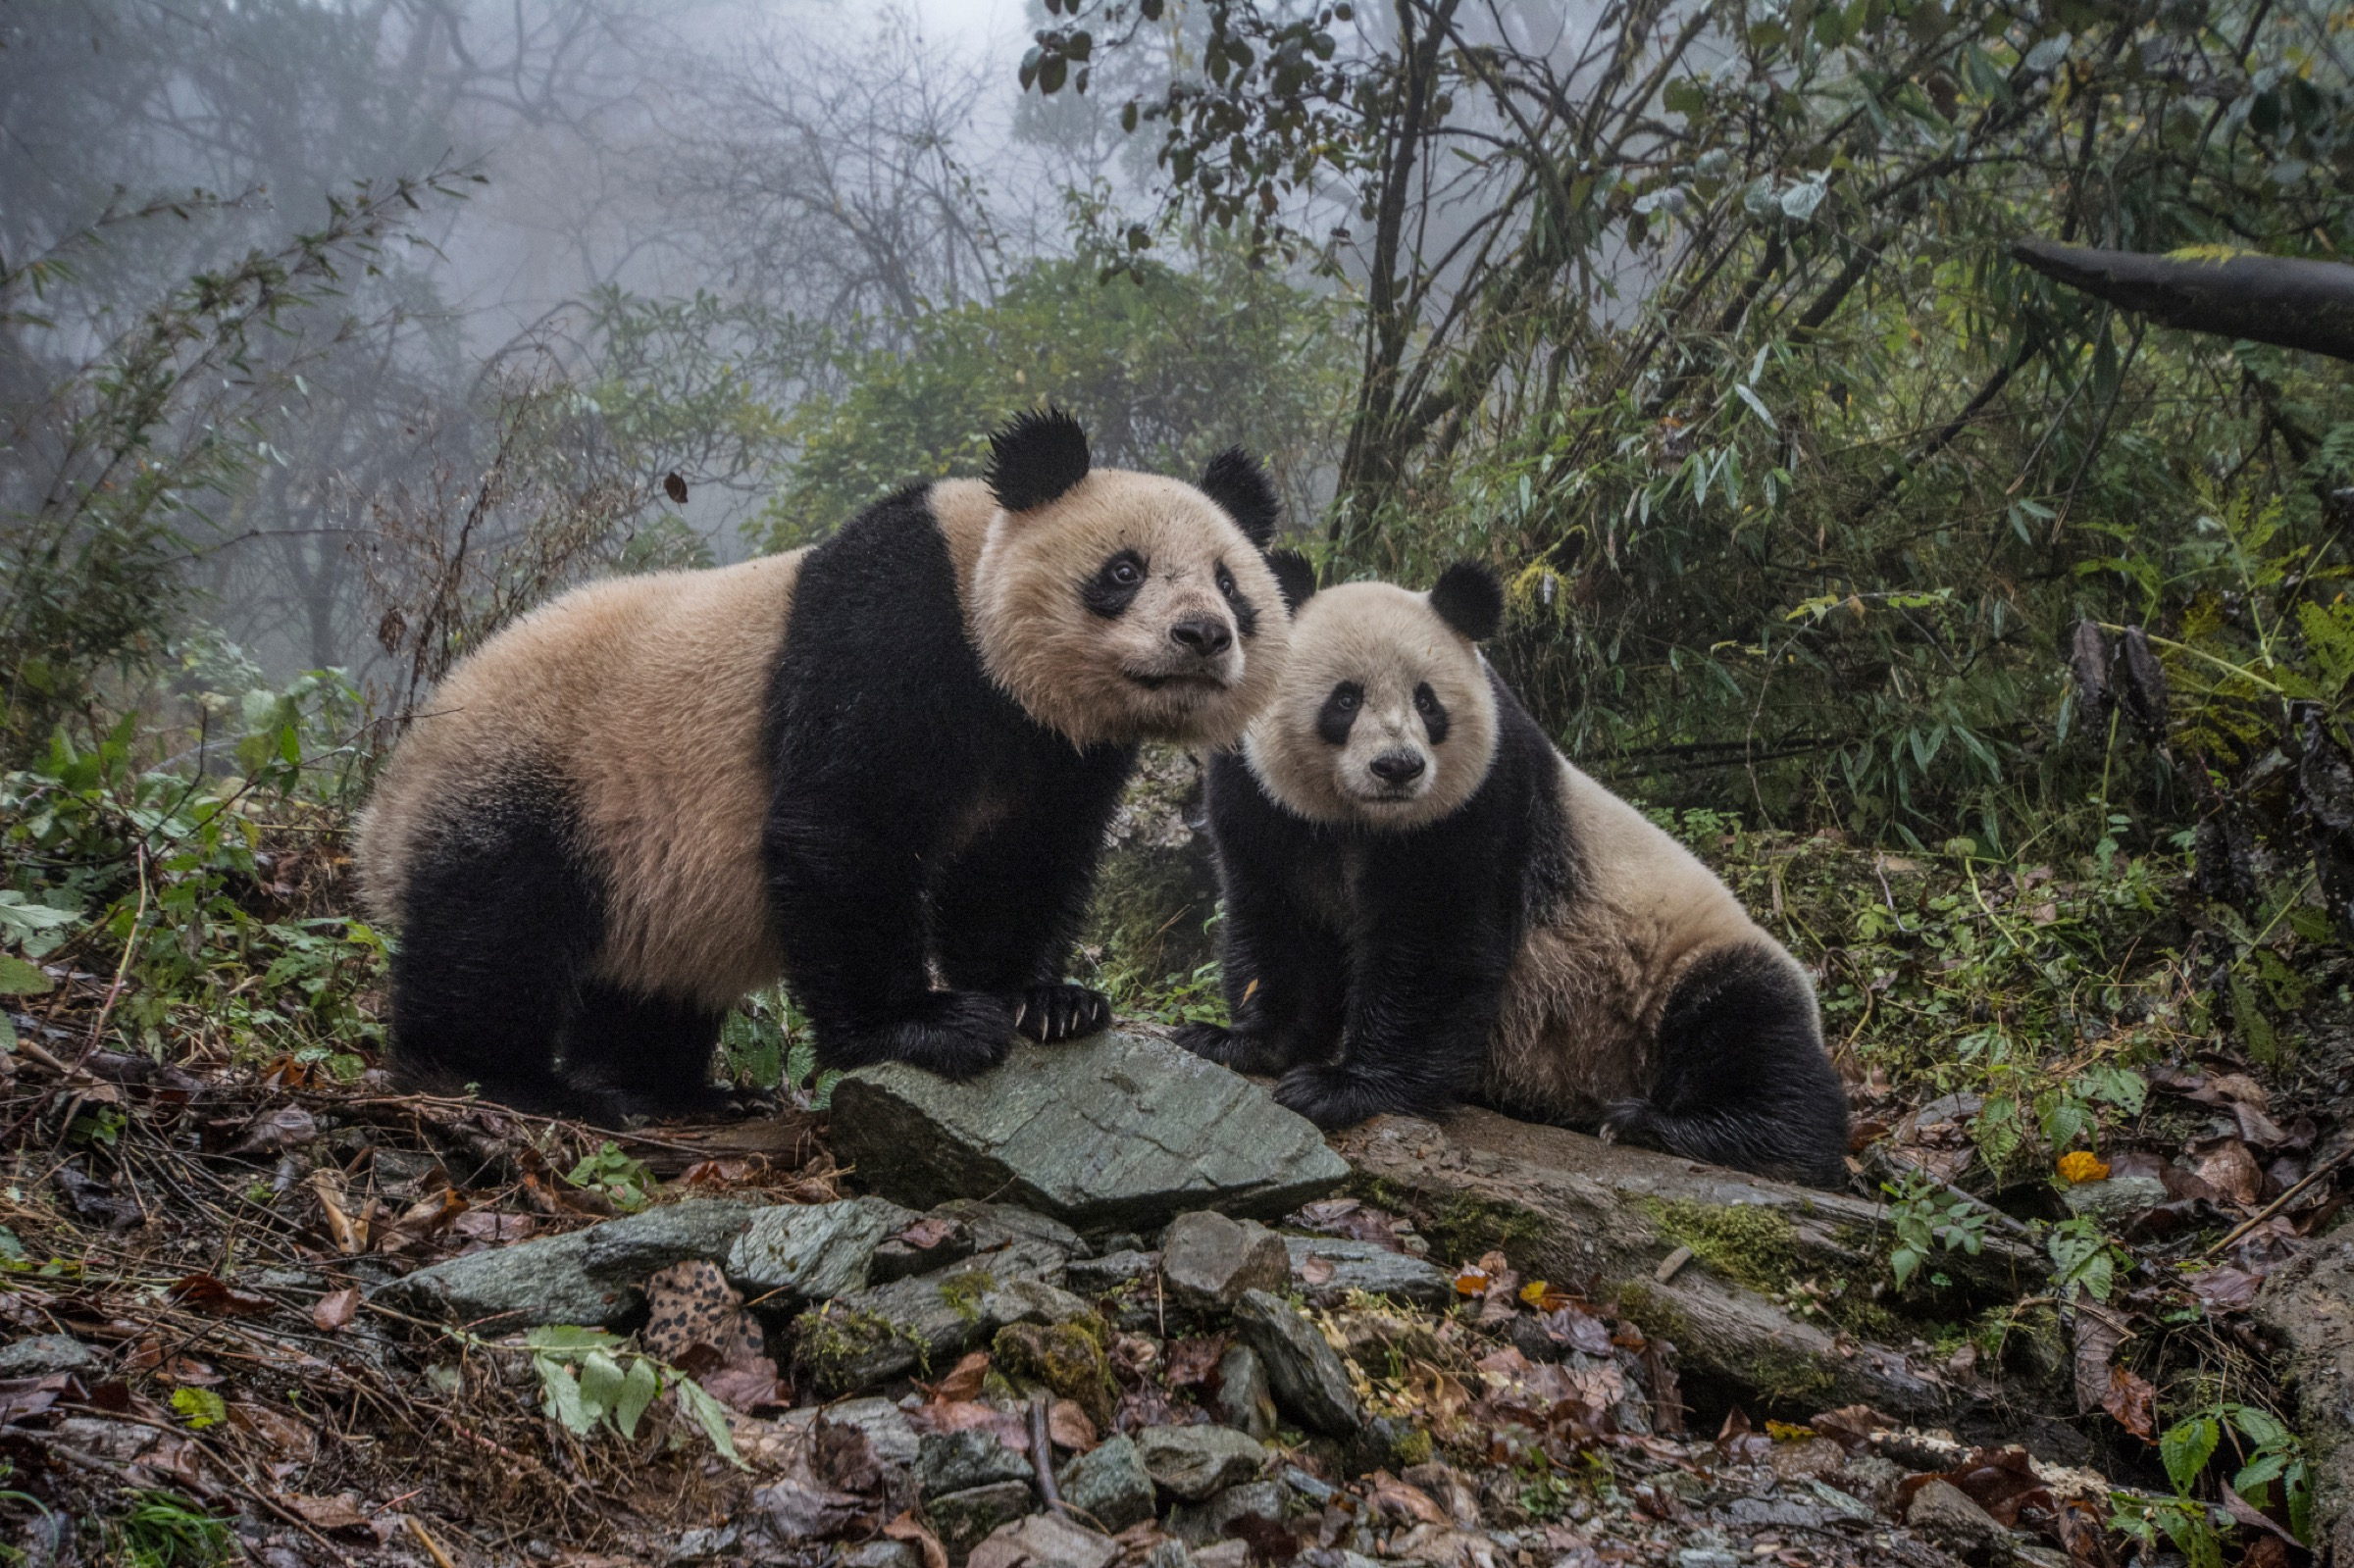 Two adult pandas monitor activities around theirenclosure at the Wolong Nature Reserve Panda in Sichuan Province. Photograph by Ami Vitale